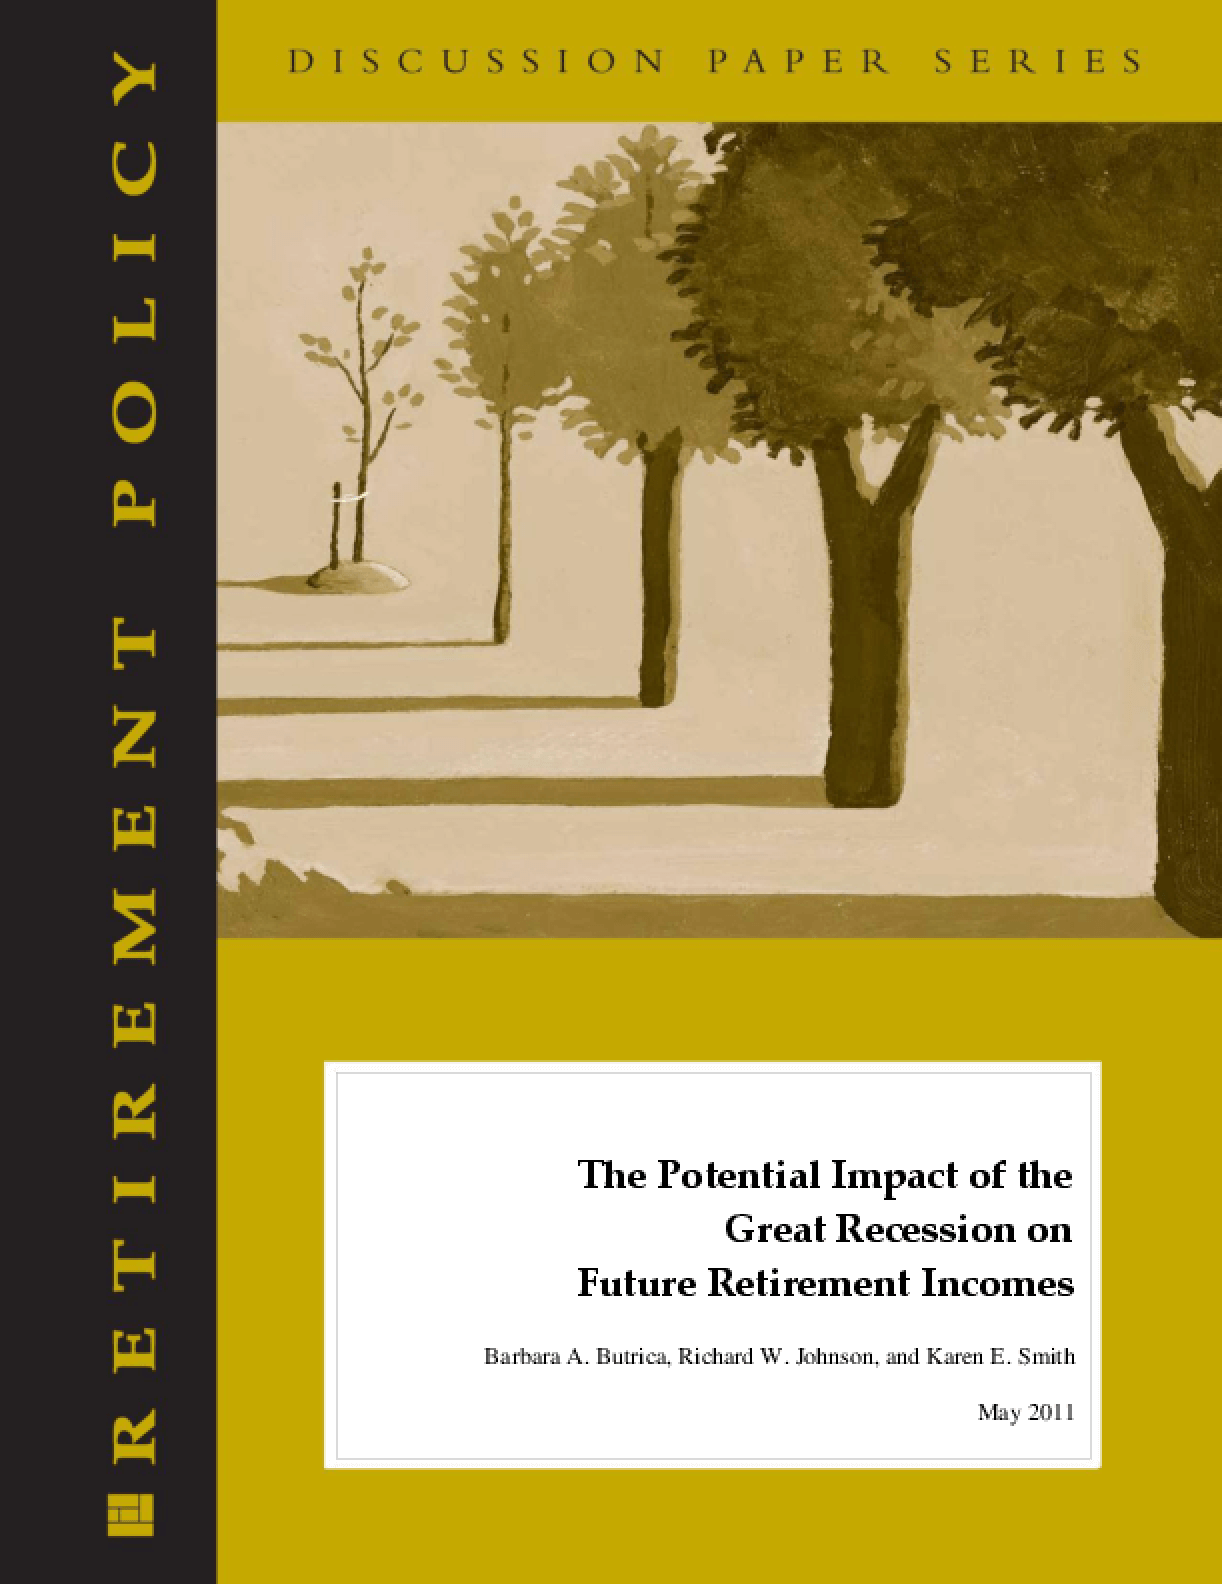 The Potential Impact of the Great Recession on Future Retirement Incomes